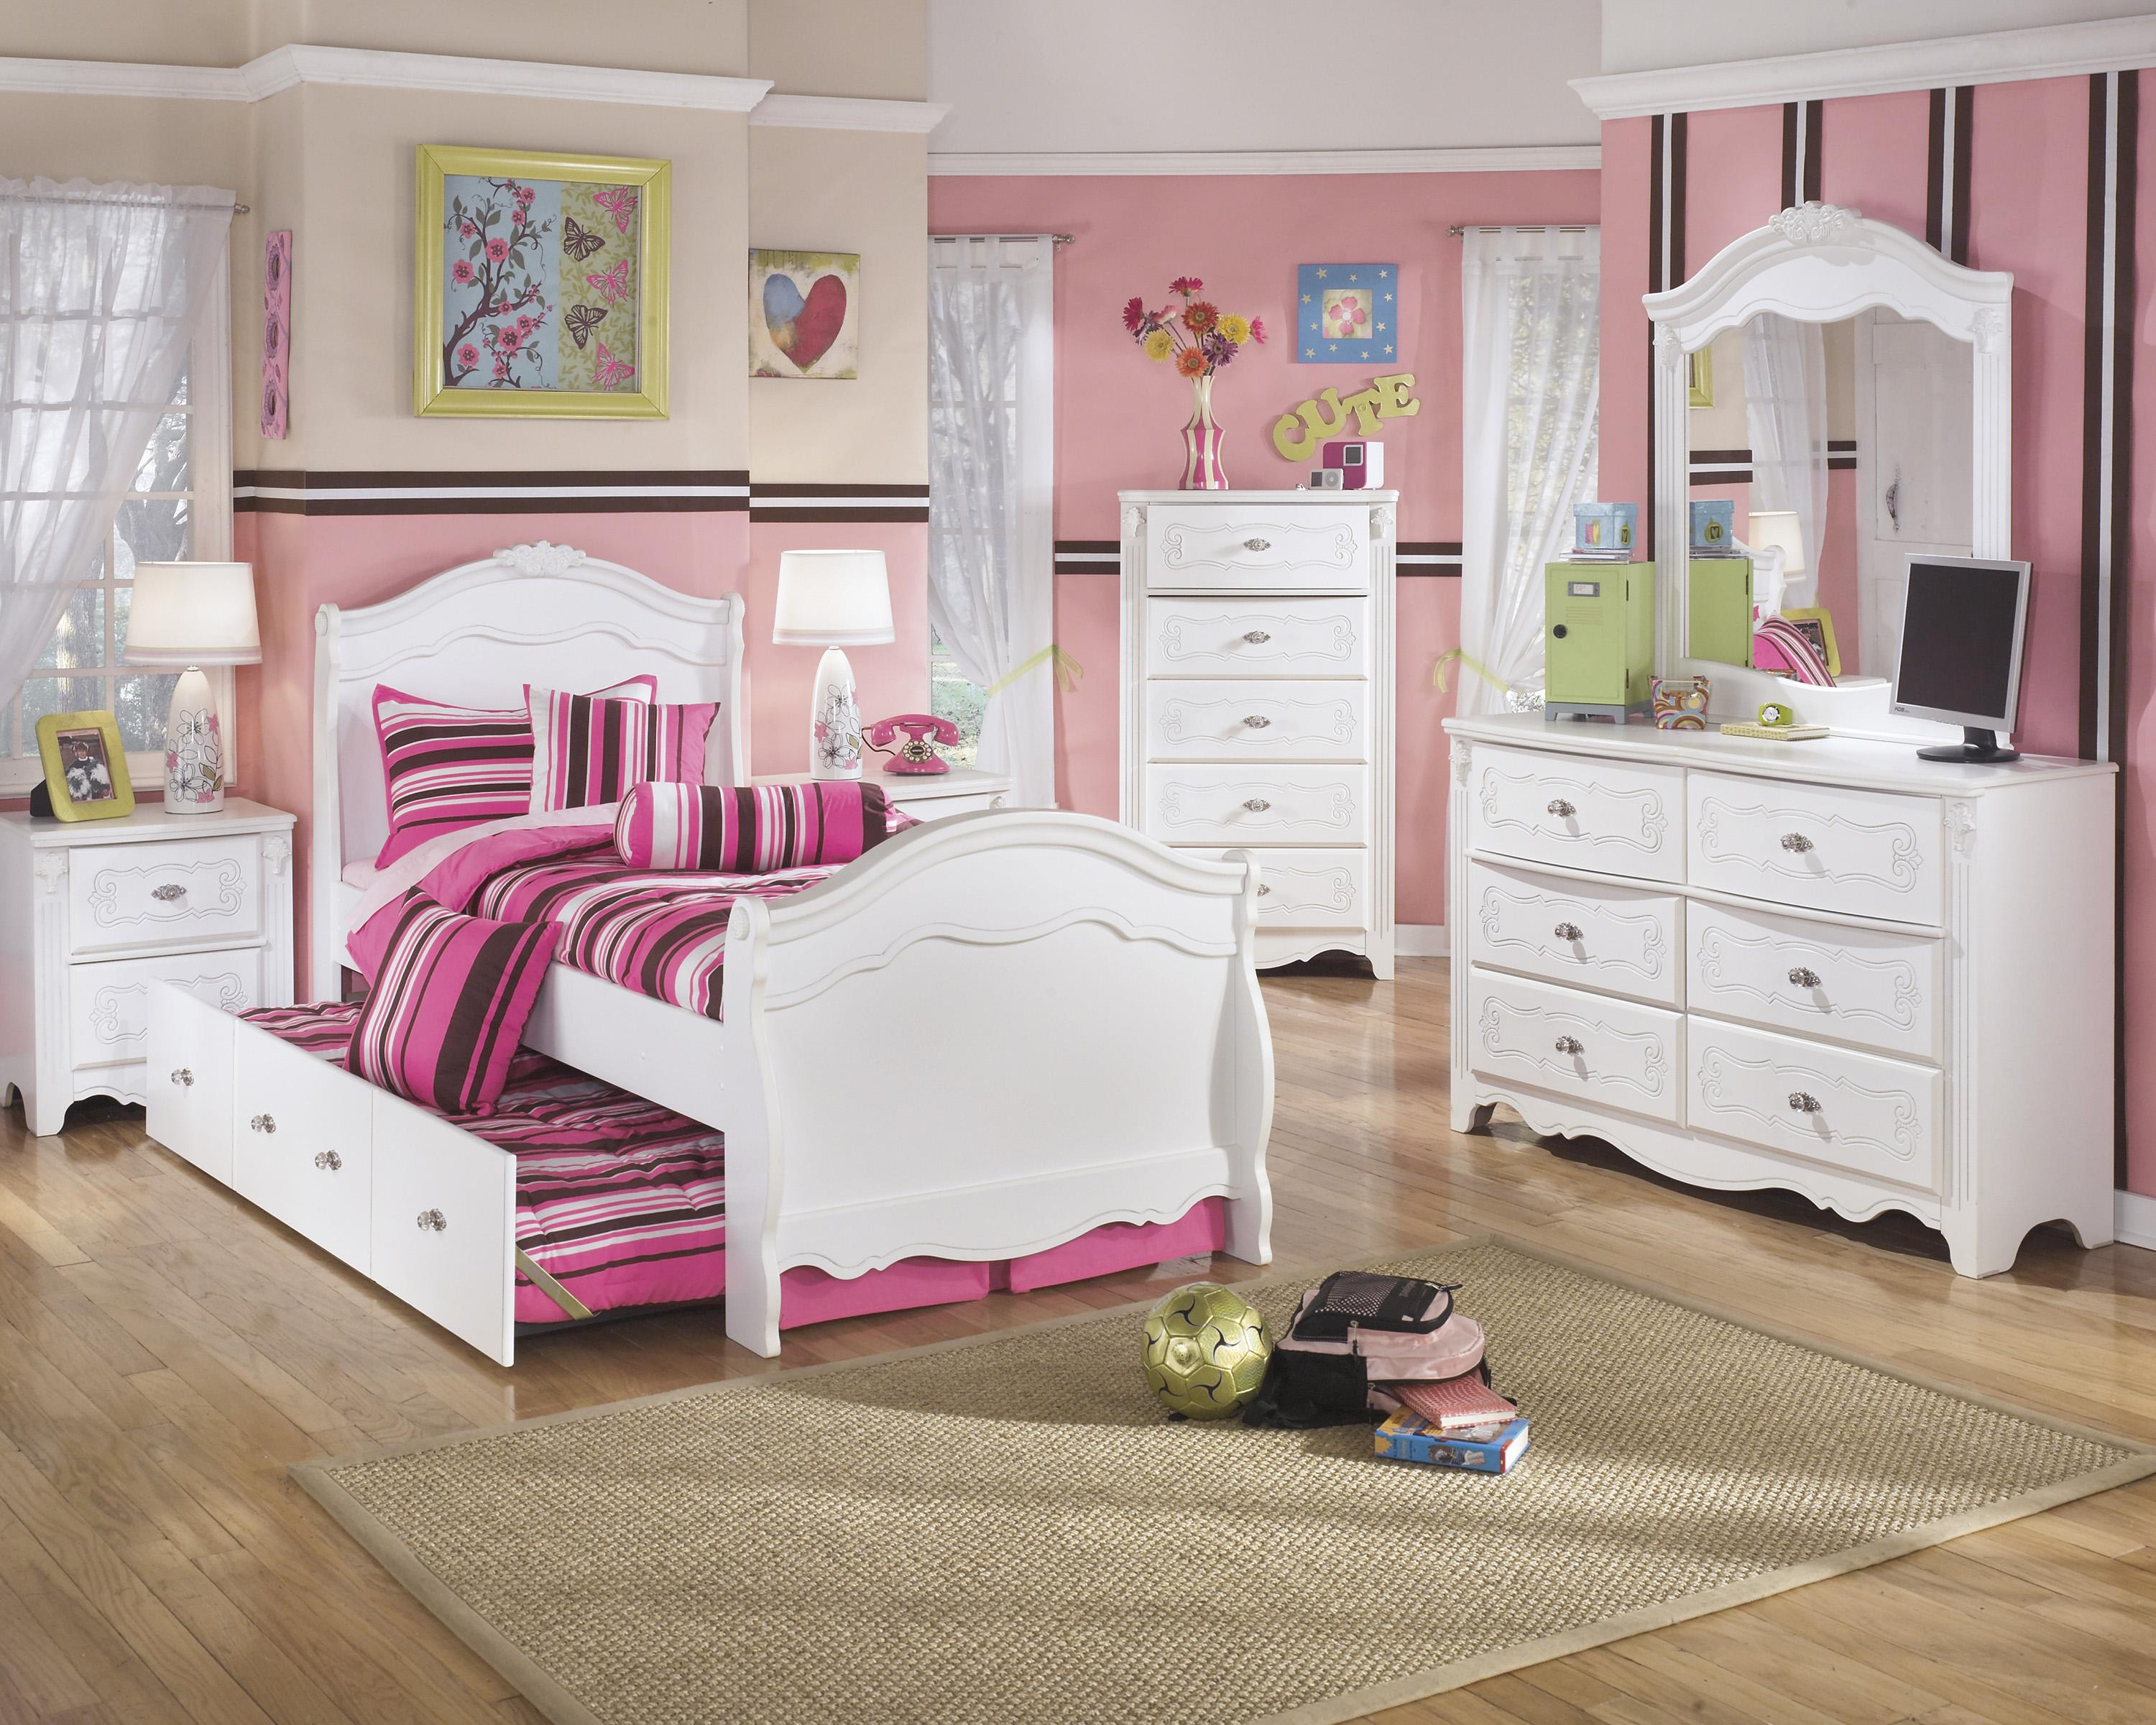 Signature Design by Ashley Exquisite Twin Bedroom Group - Item Number: B188 T Bedroom Group 4